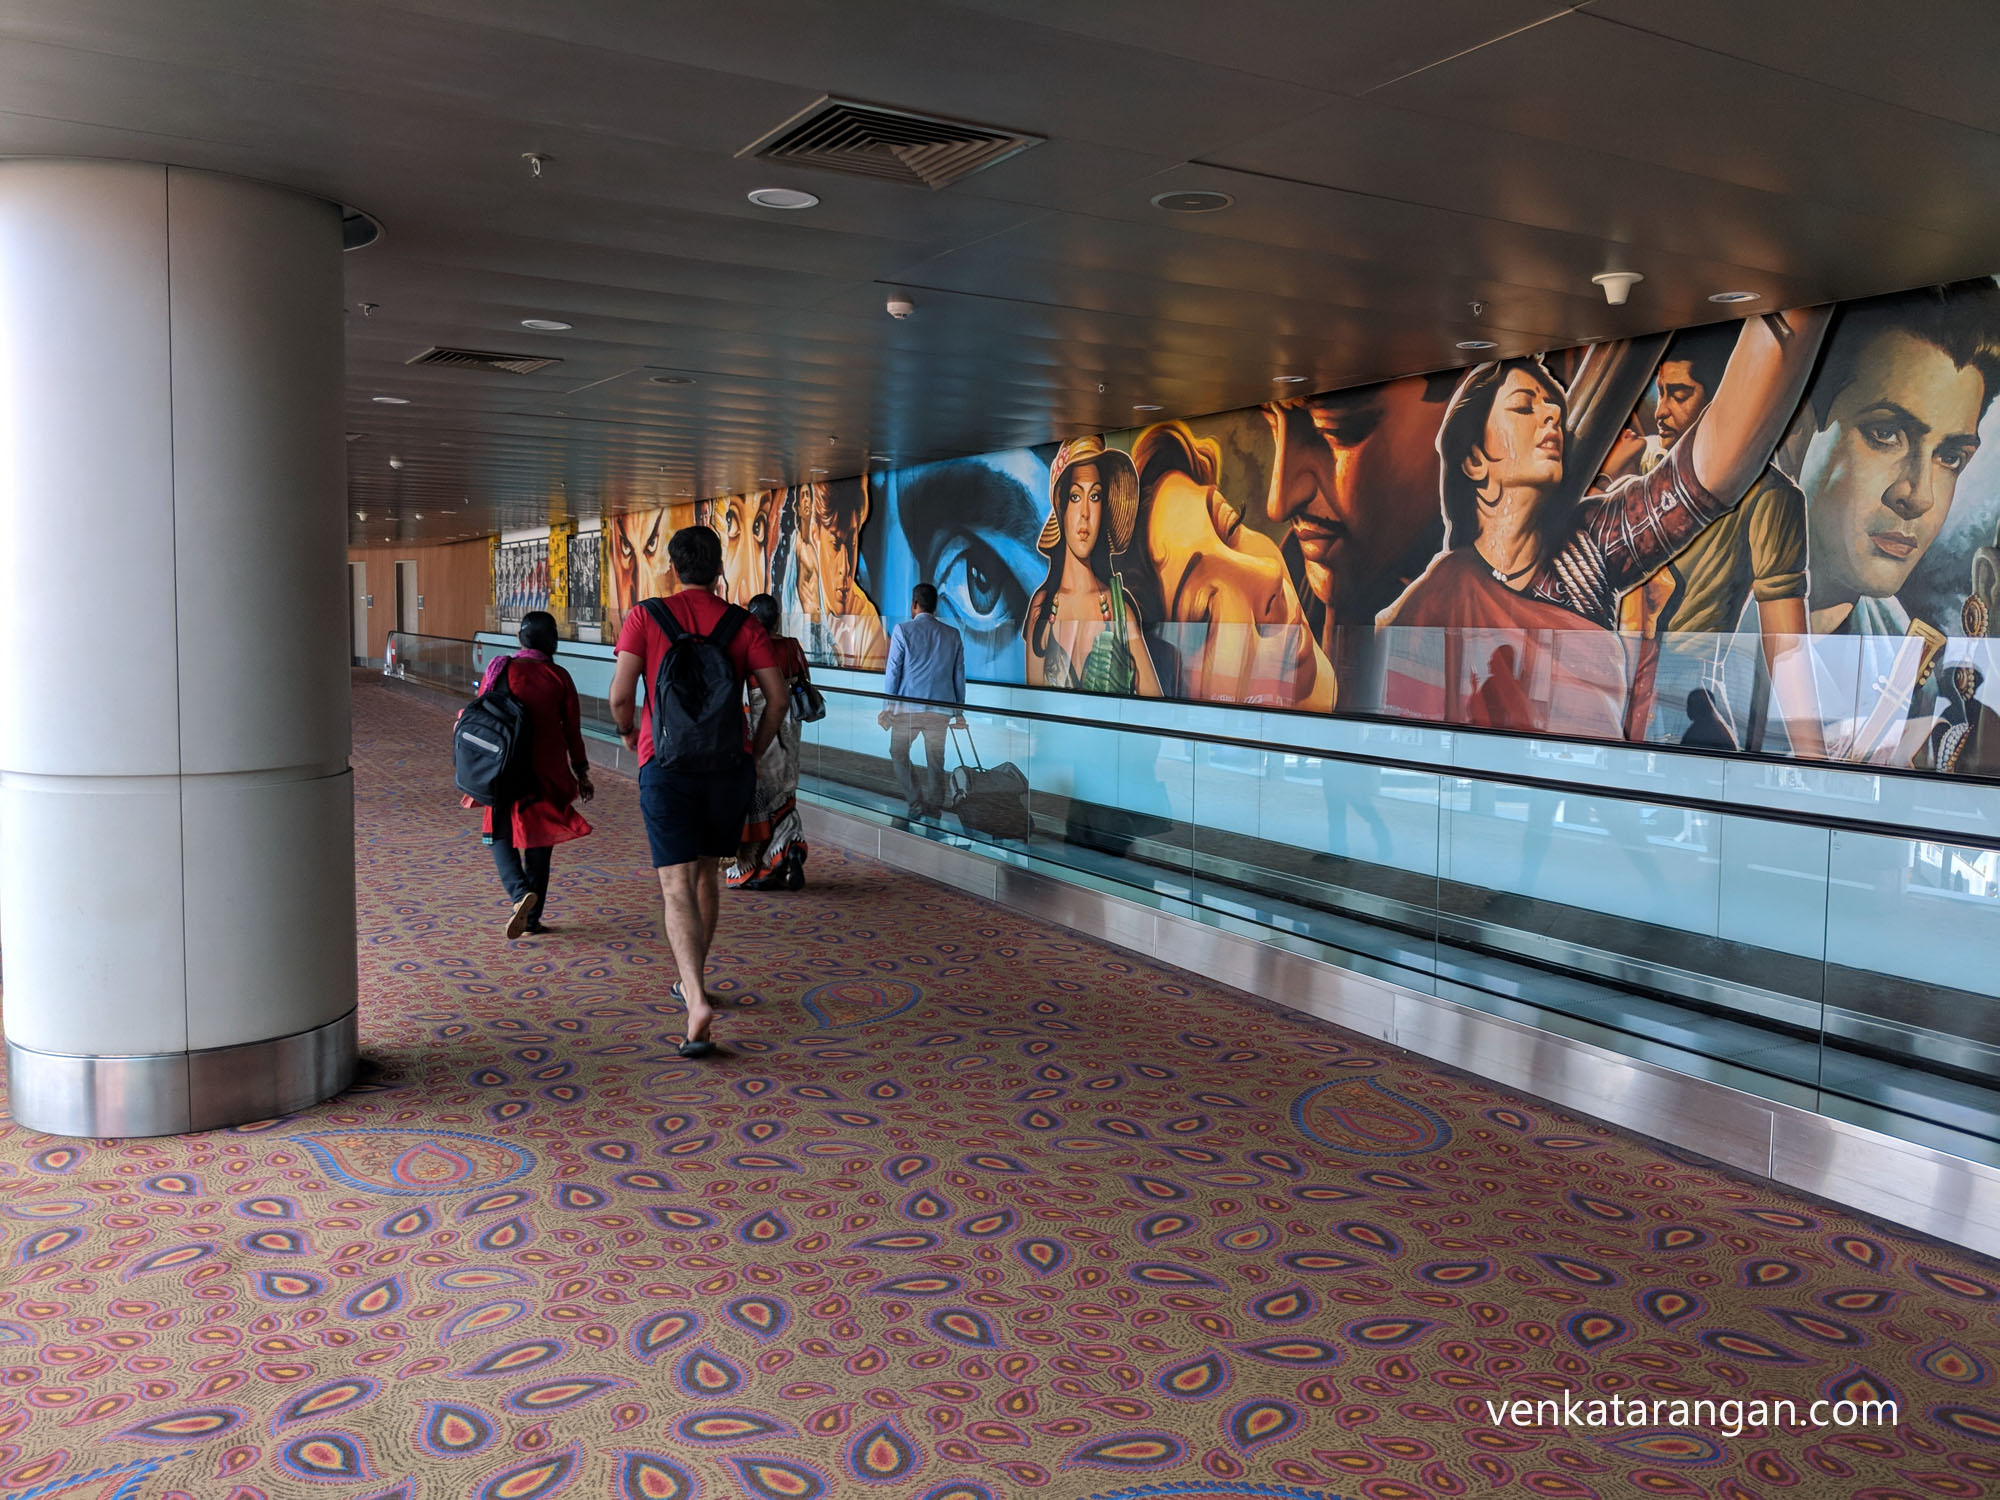 India's largest public art programme is in an Airport